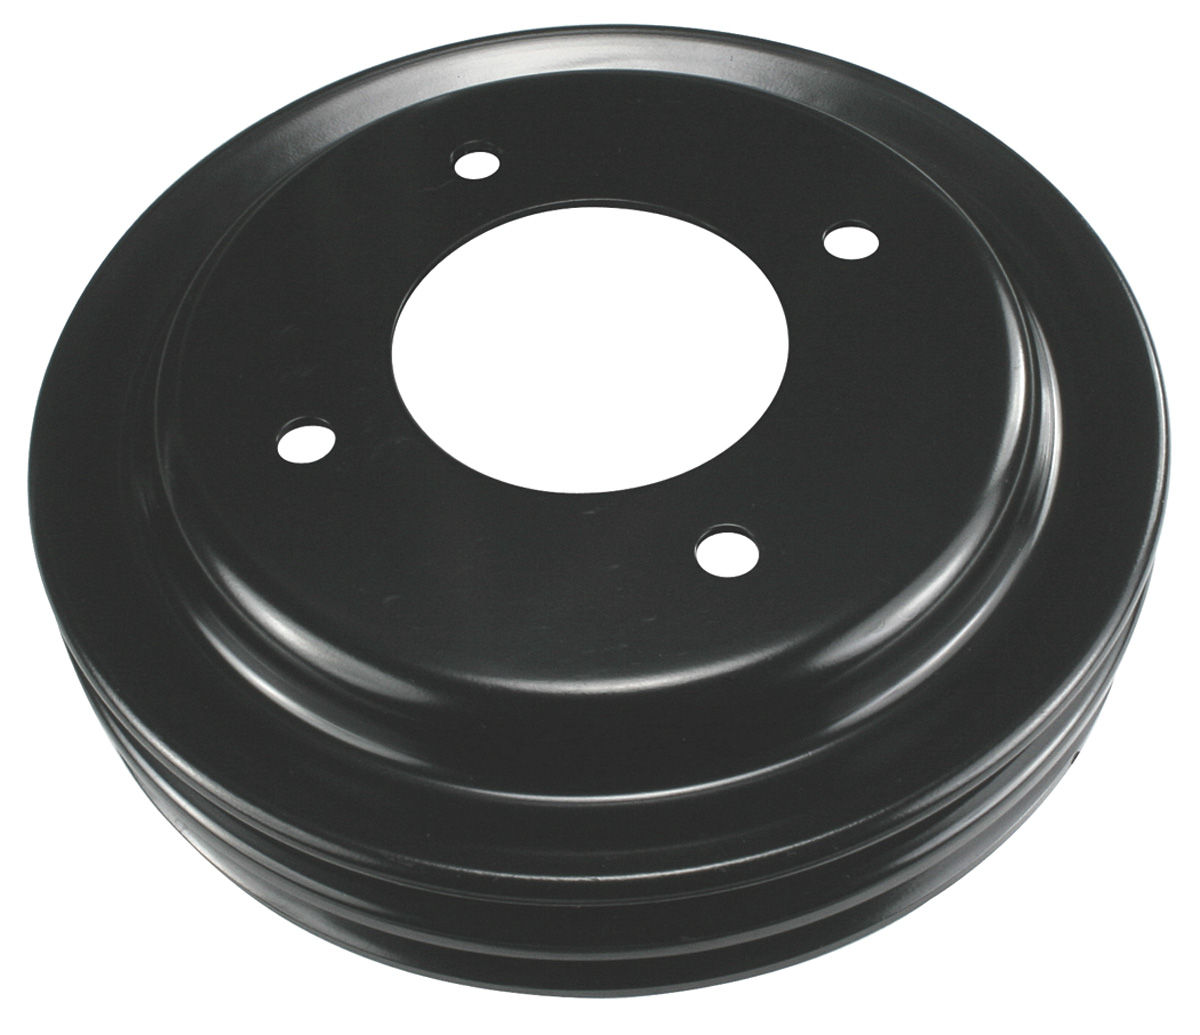 Photo of Engine Pulley Crank 2V, 7-1/4""